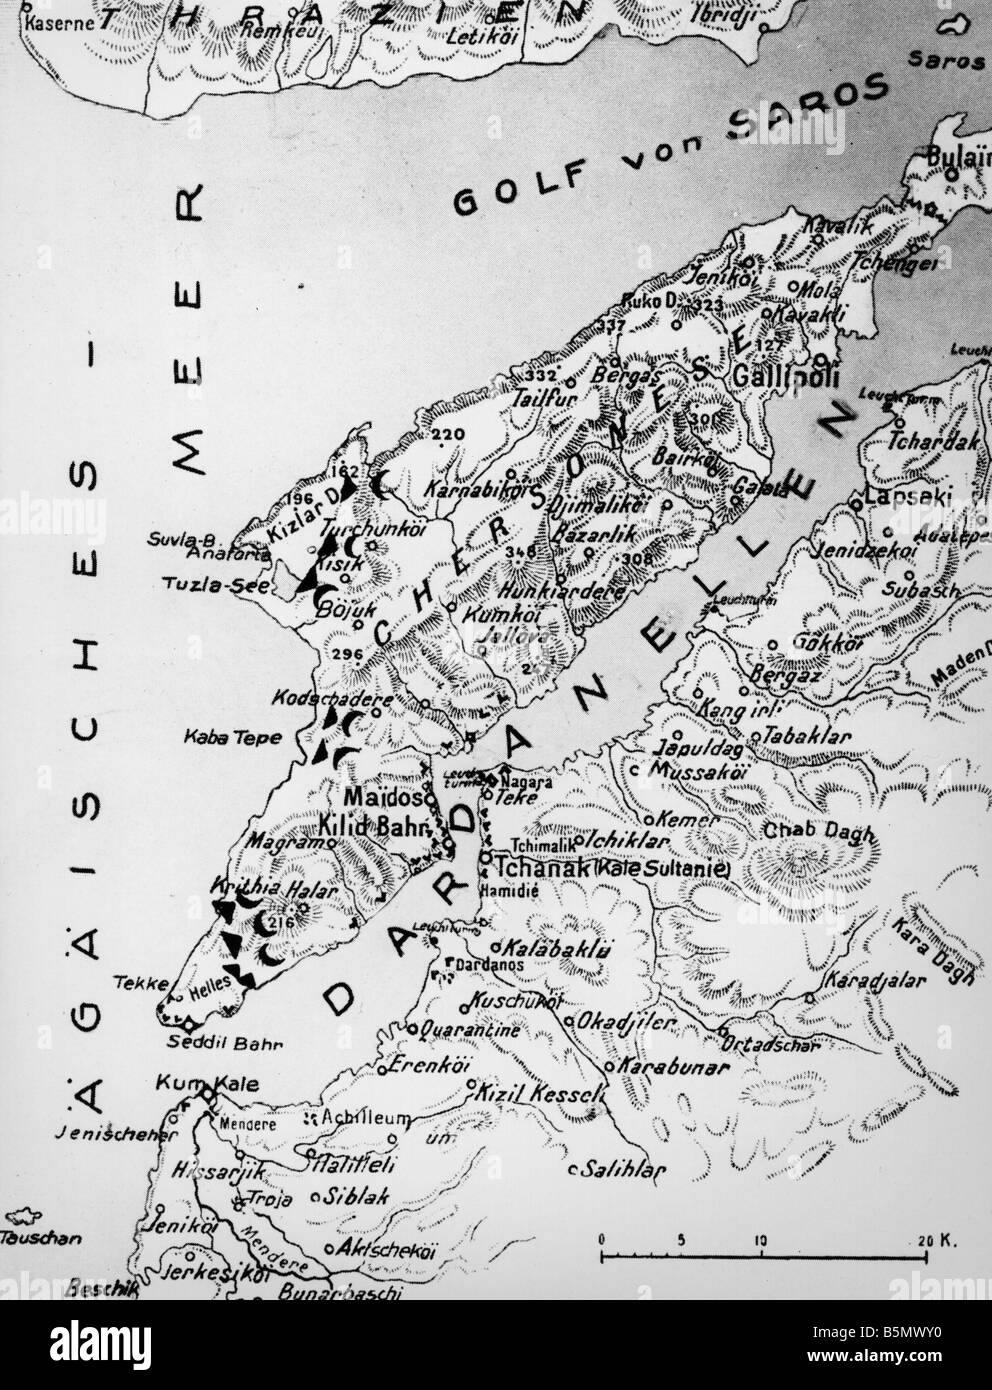 9tk 1915 4 25 f1 1 battle at gallipoli 1915 map world war 1 war in 9tk 1915 4 25 f1 1 battle at gallipoli 1915 map world war 1 war in the near east landing attempt by the allies on the dardanelle gumiabroncs